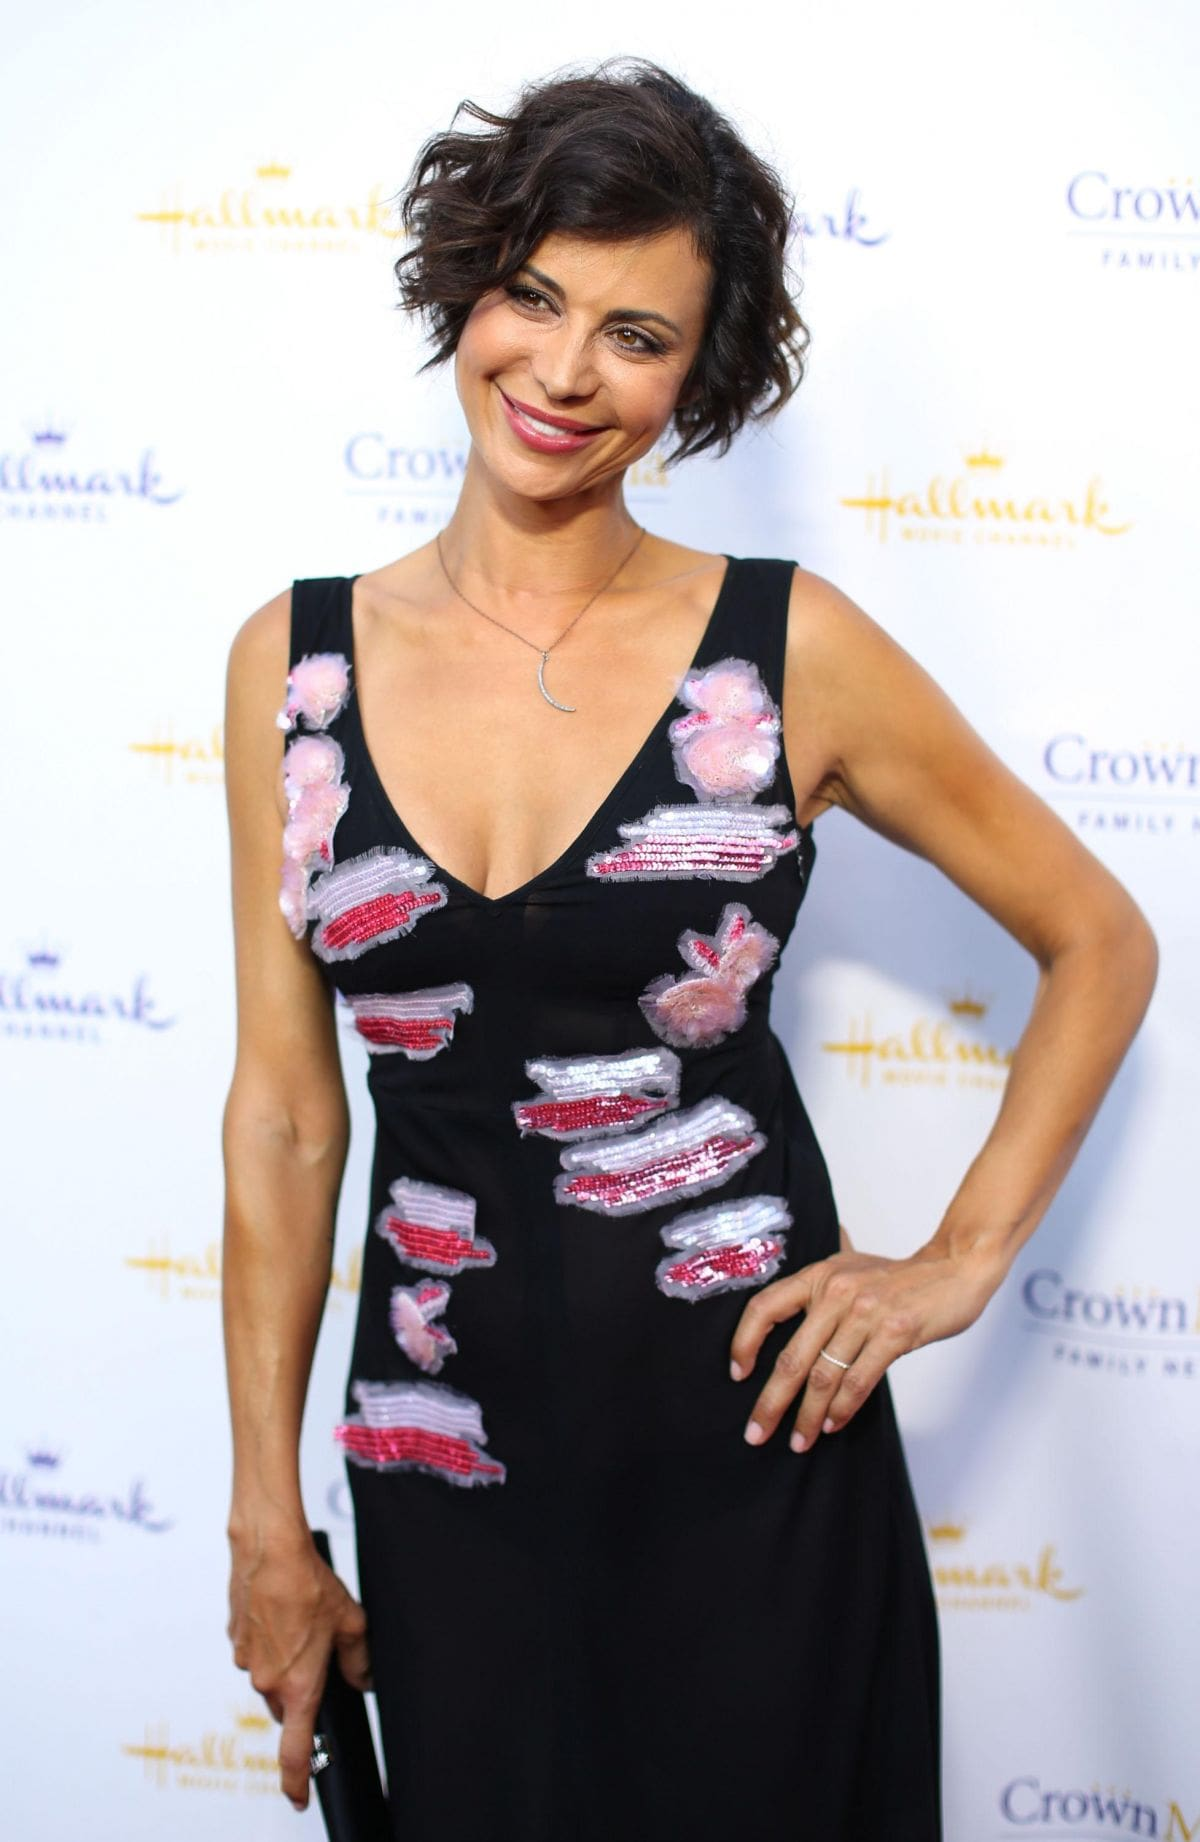 Catherine Bell on Crown Awards